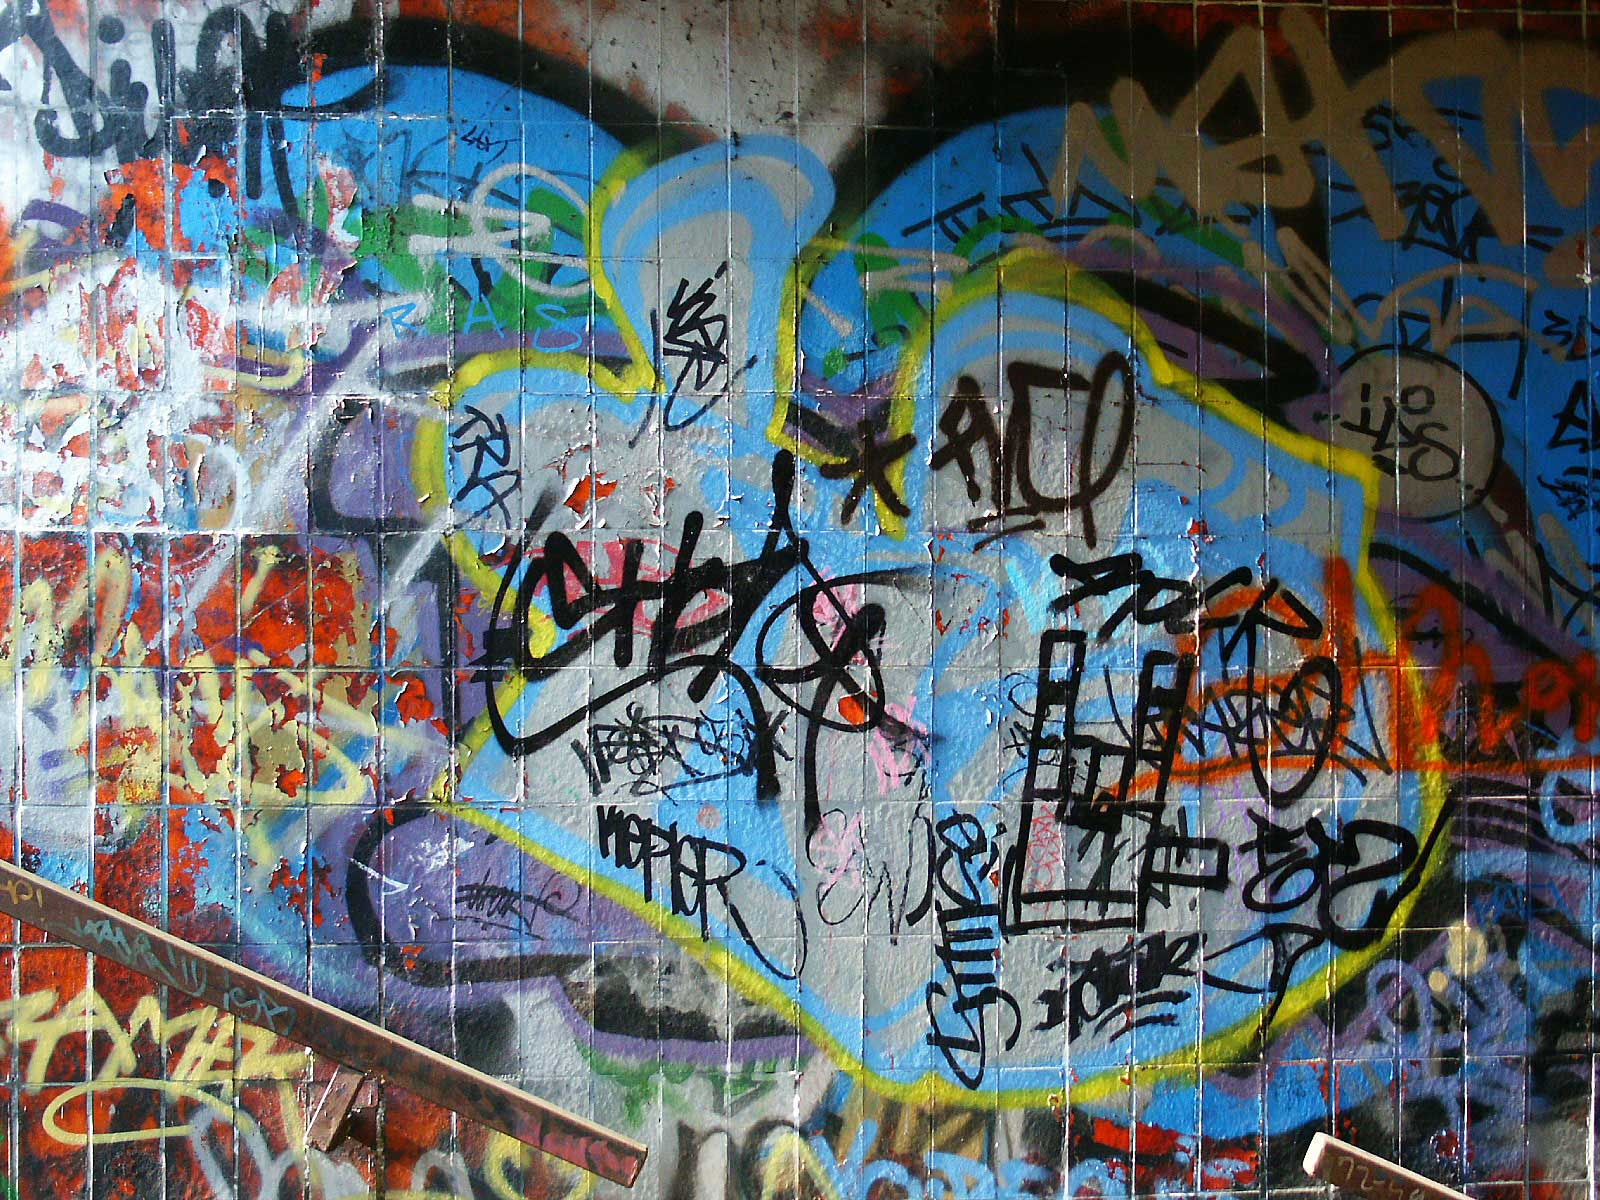 Talk:Graffiti/Archive 1